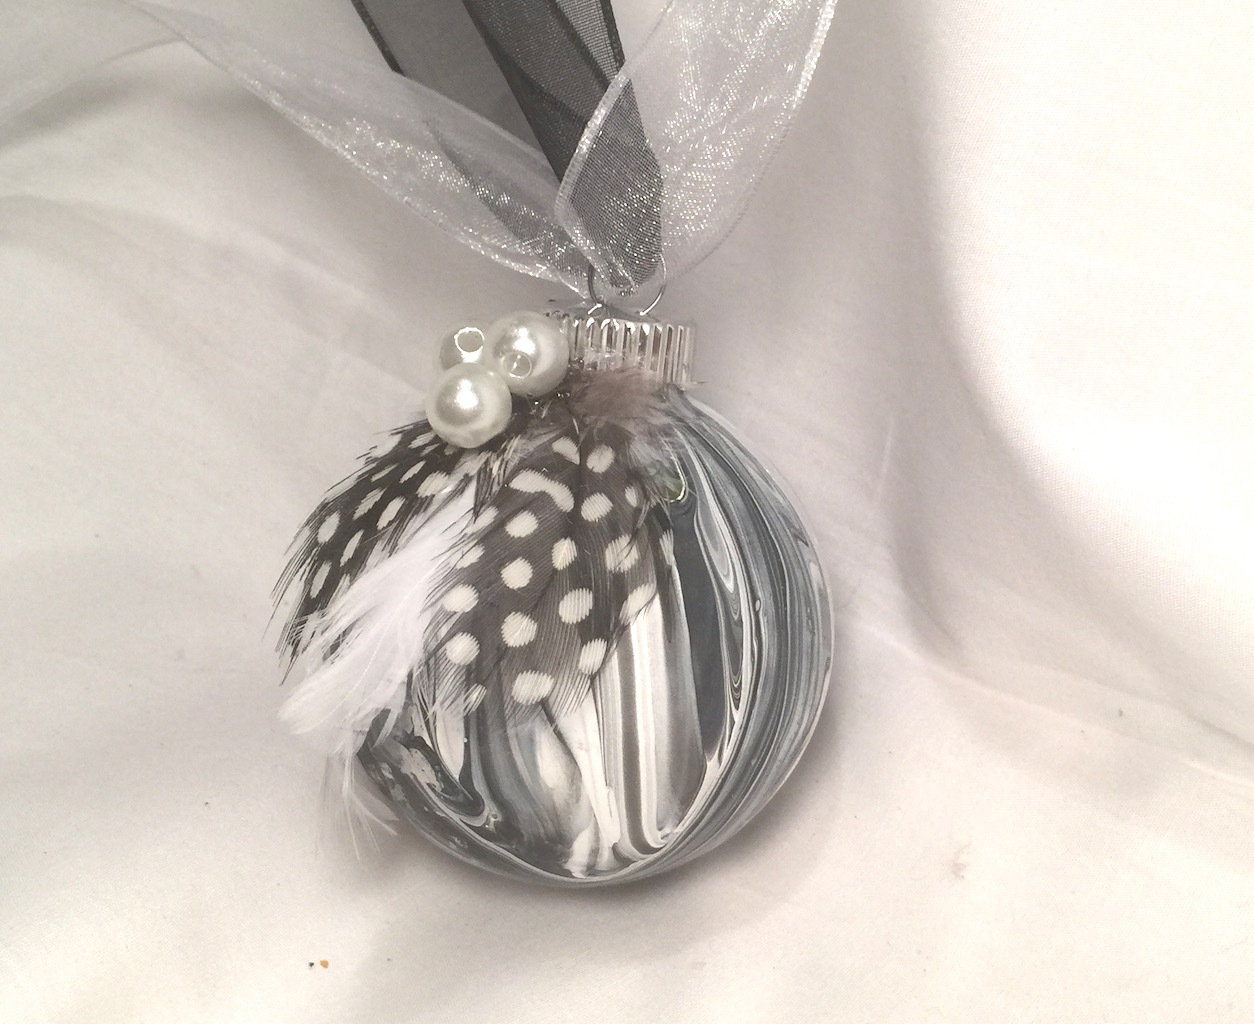 Black & White Marble Swirl Marble Acrylic Pour Painted Christmas Ornament Pearls